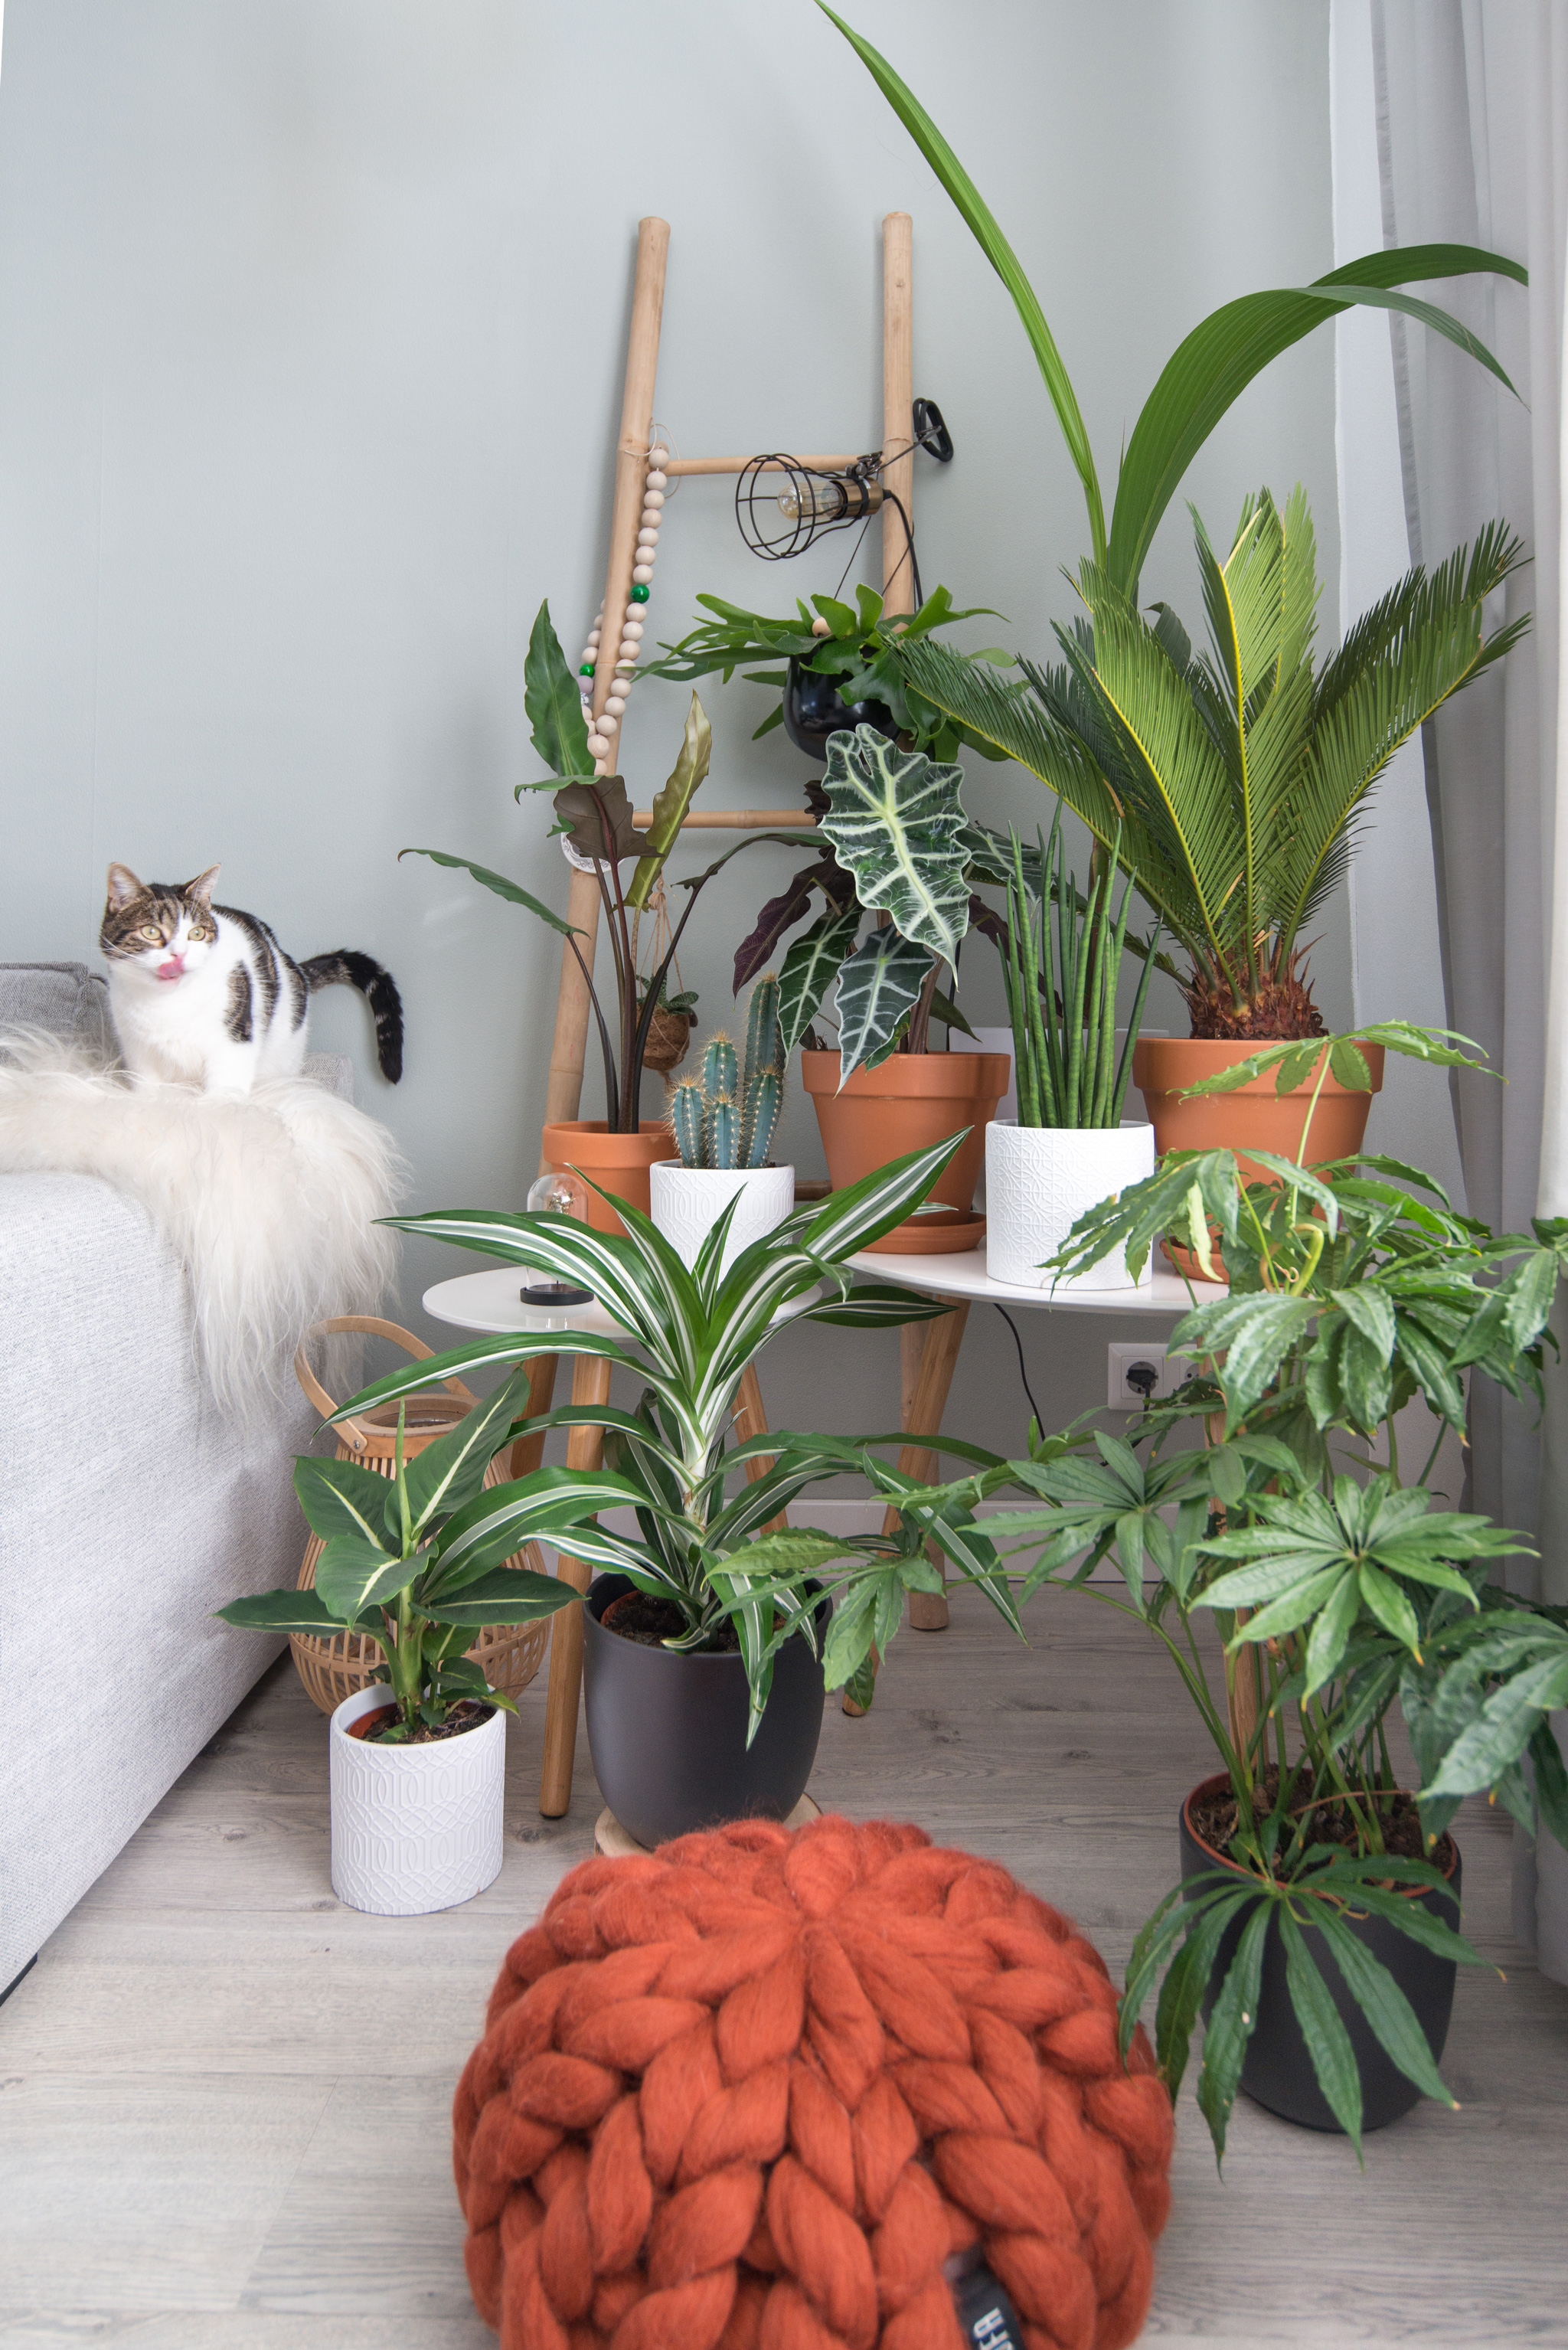 Win je eigen groene Urban Jungle! — Keeelly91Blog